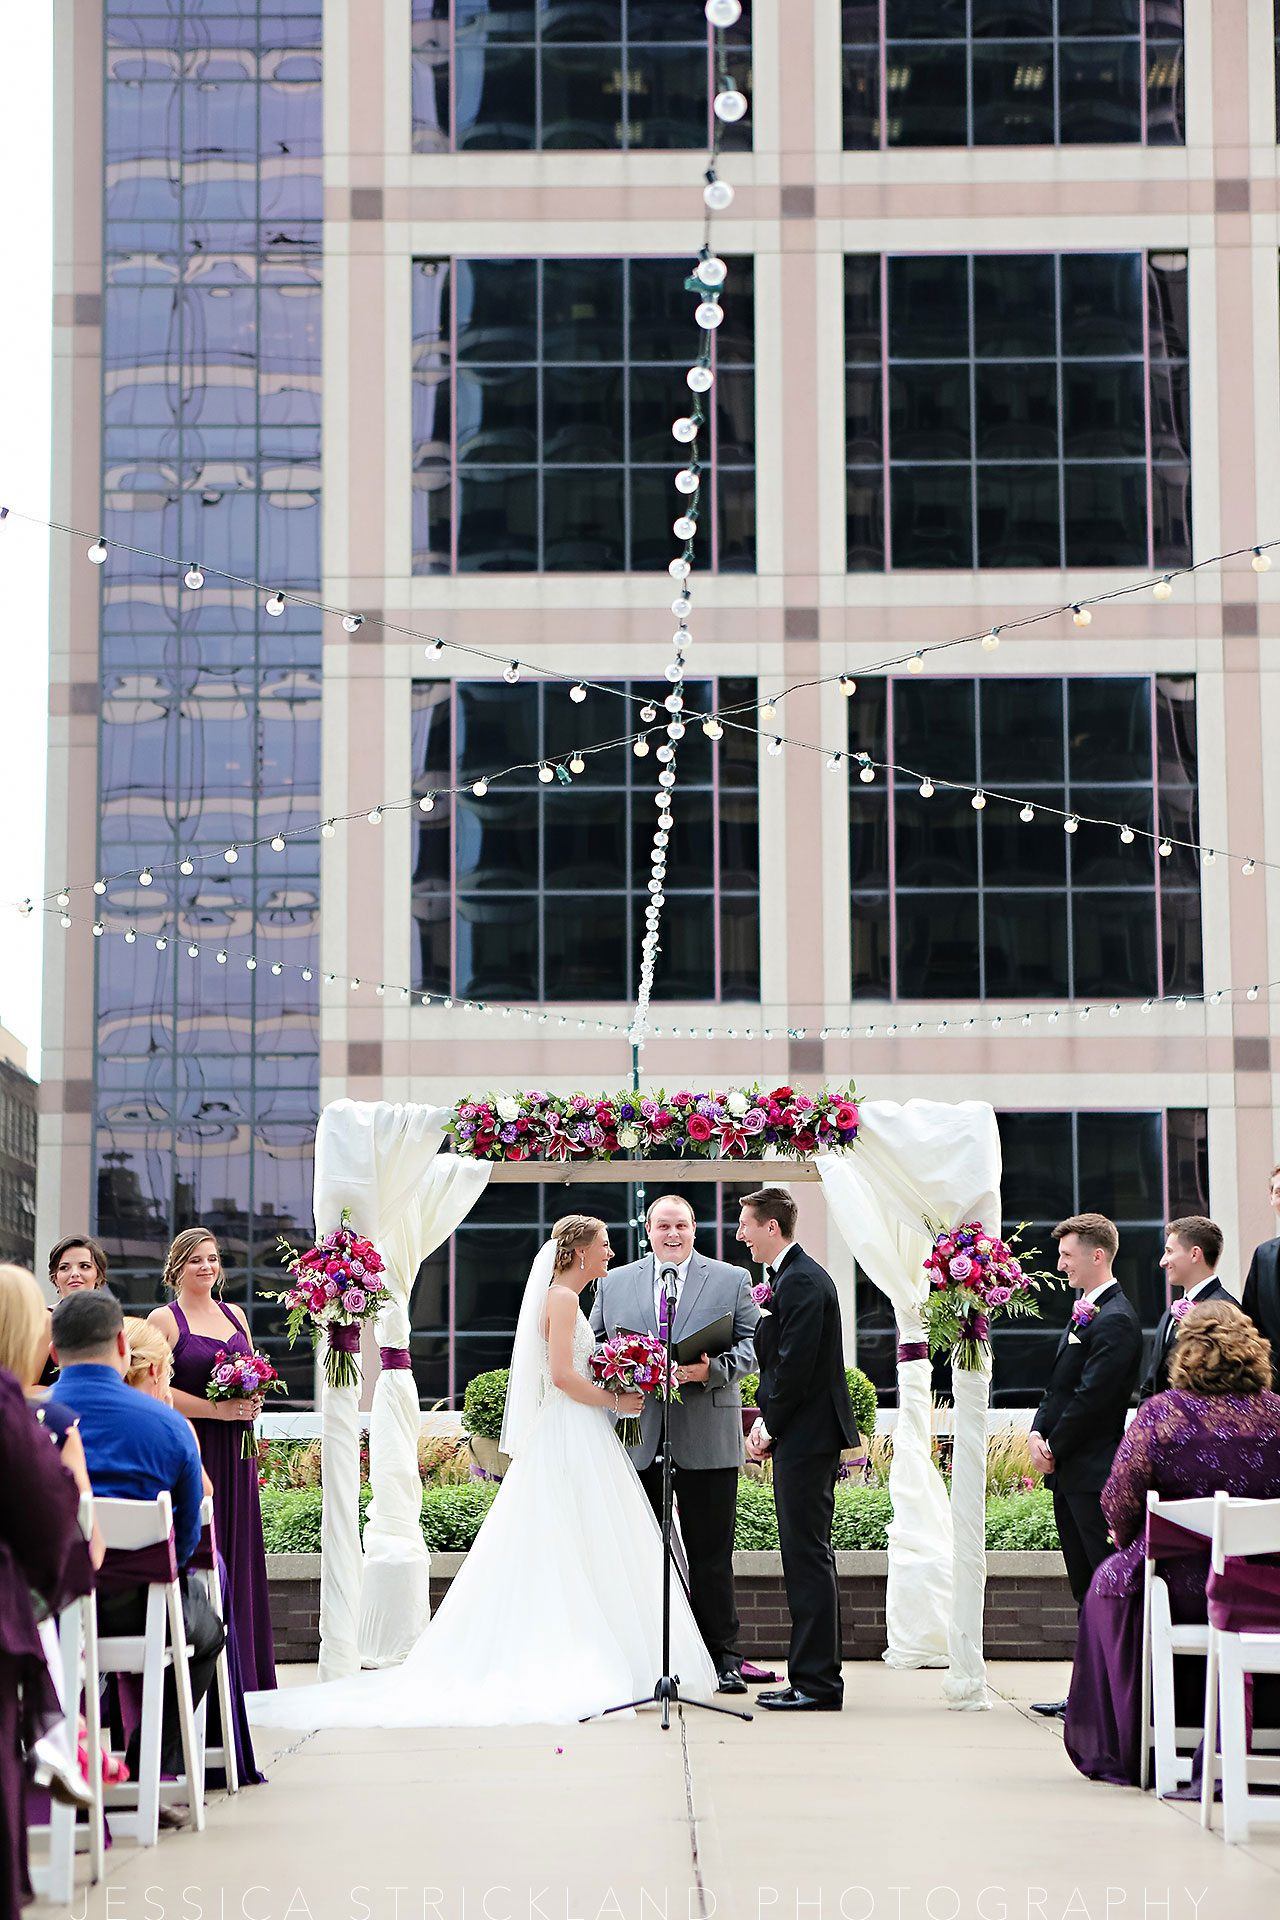 Serra Alex Regions Tower Indianapolis Wedding 162 watermarked